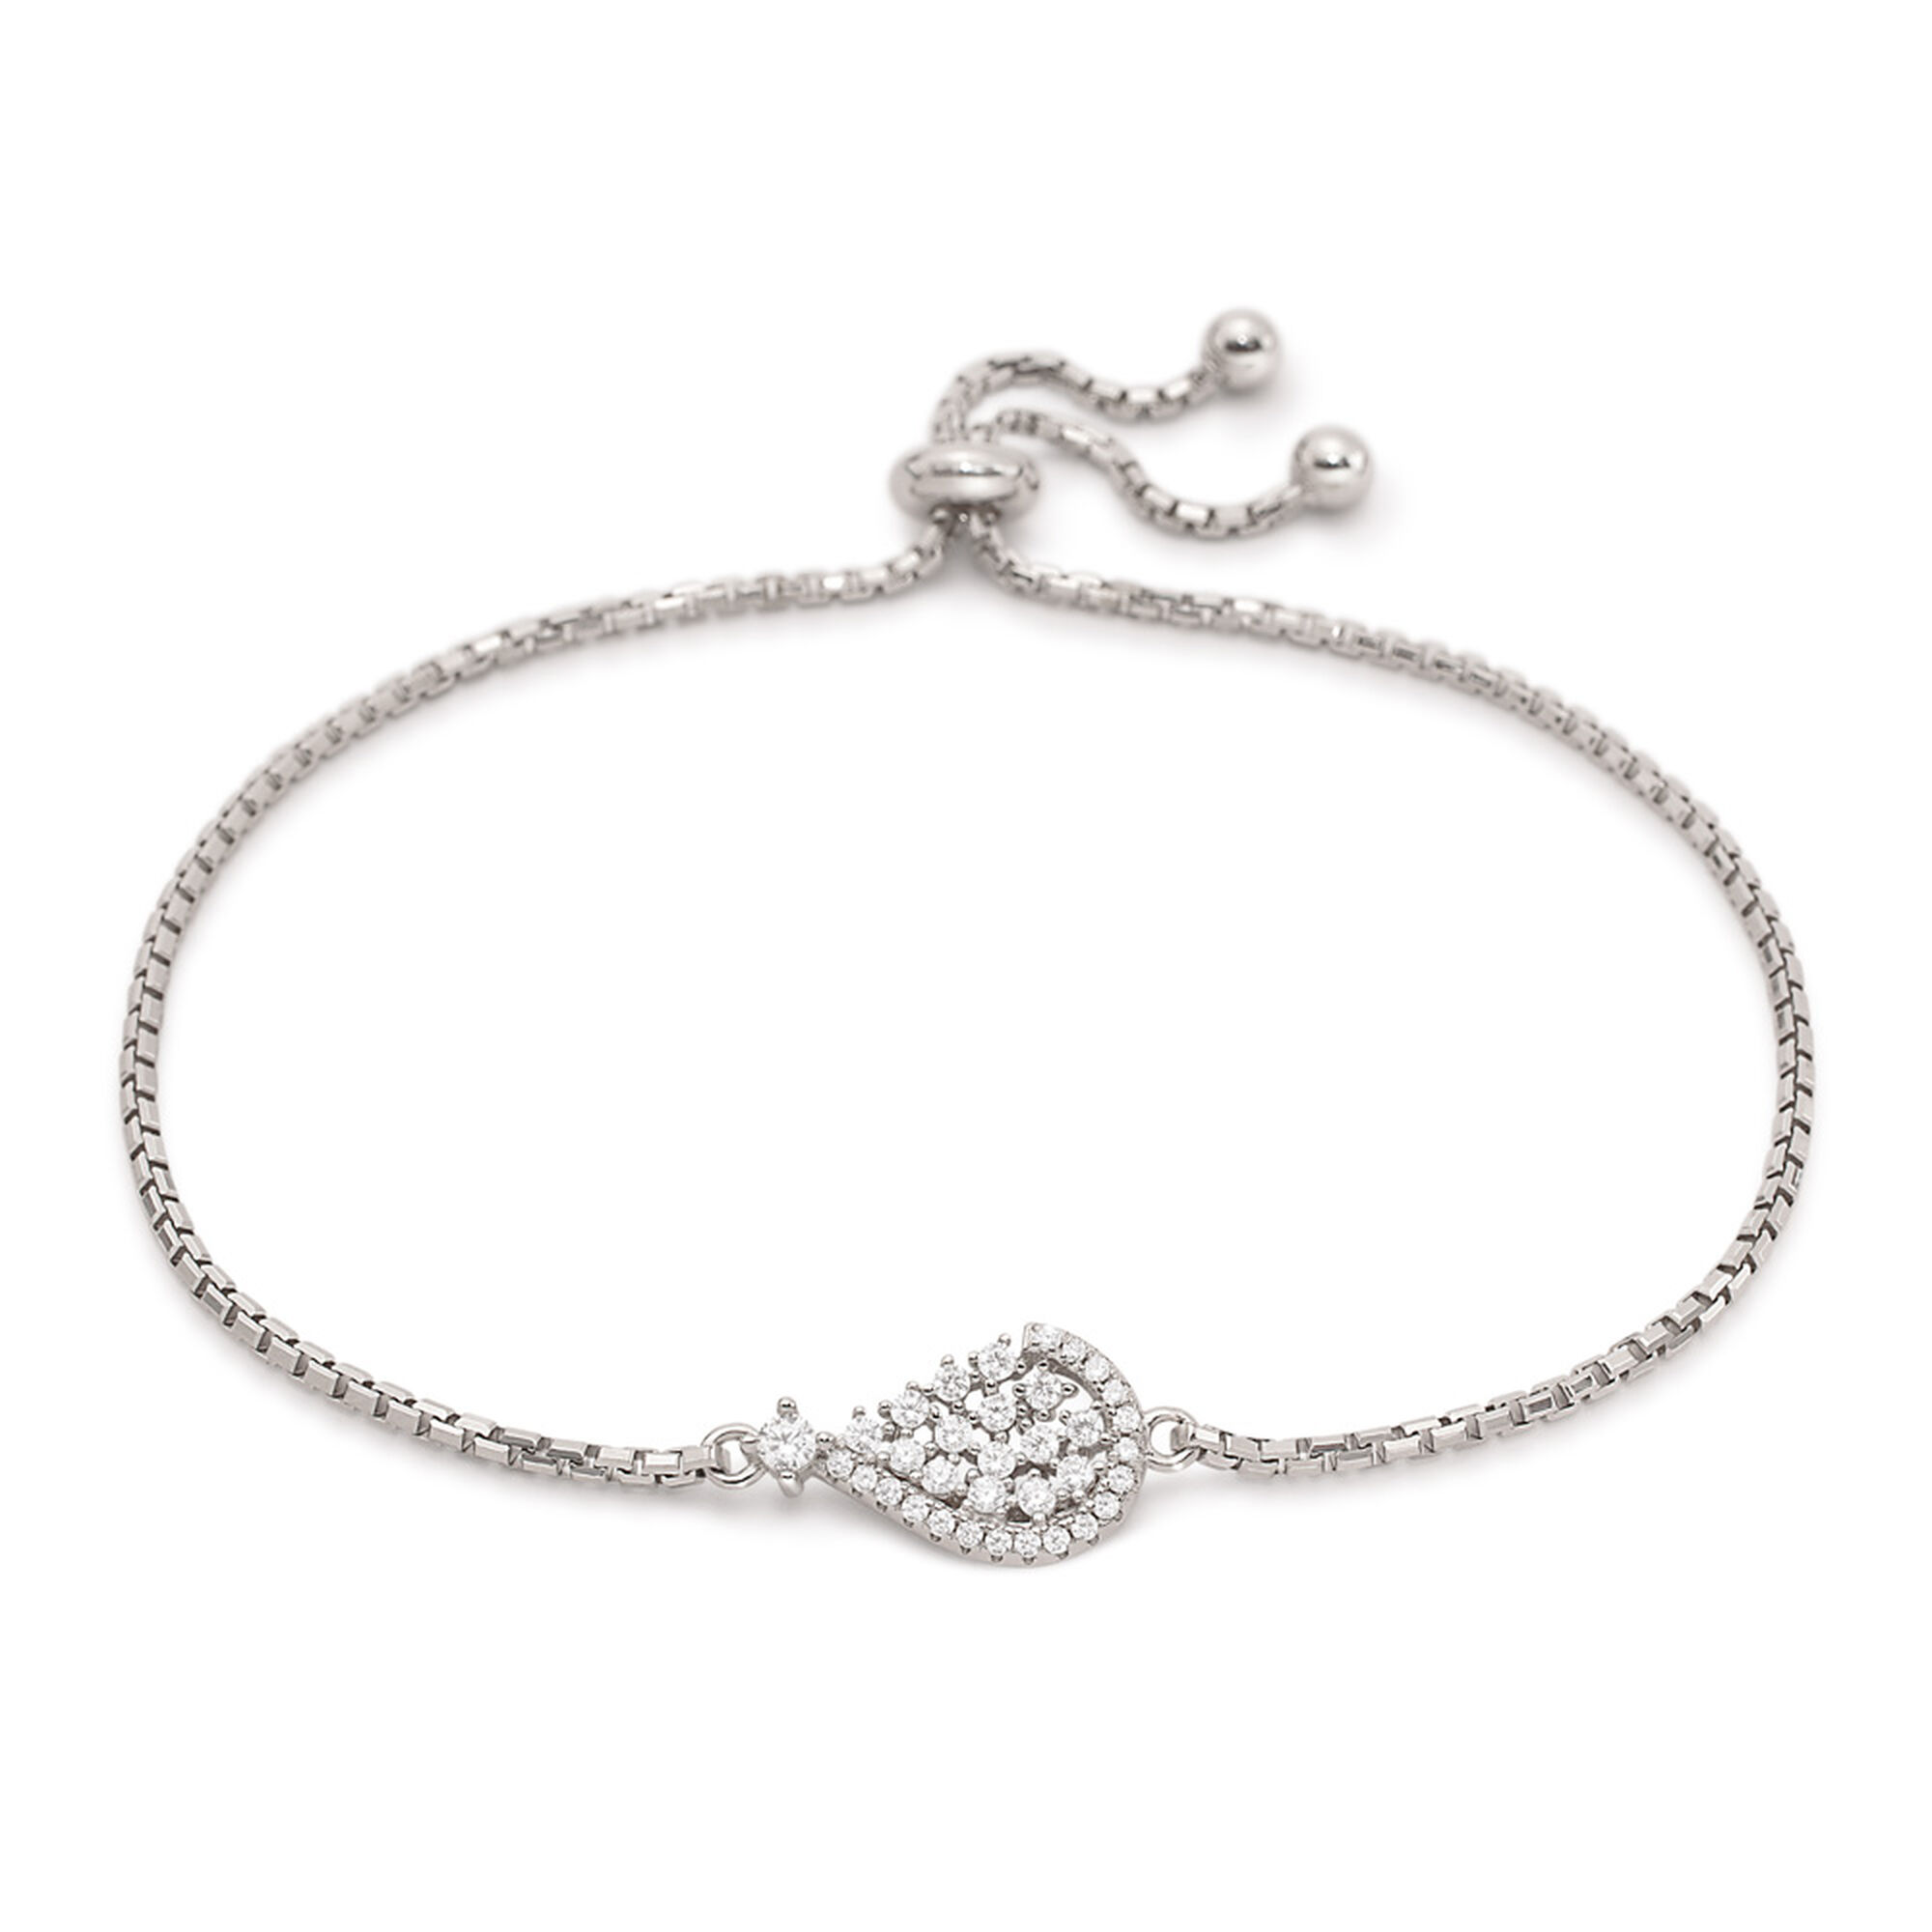 Folli Follie Sparkle Chic Rhodium Plated Bracelet 3B17S038C